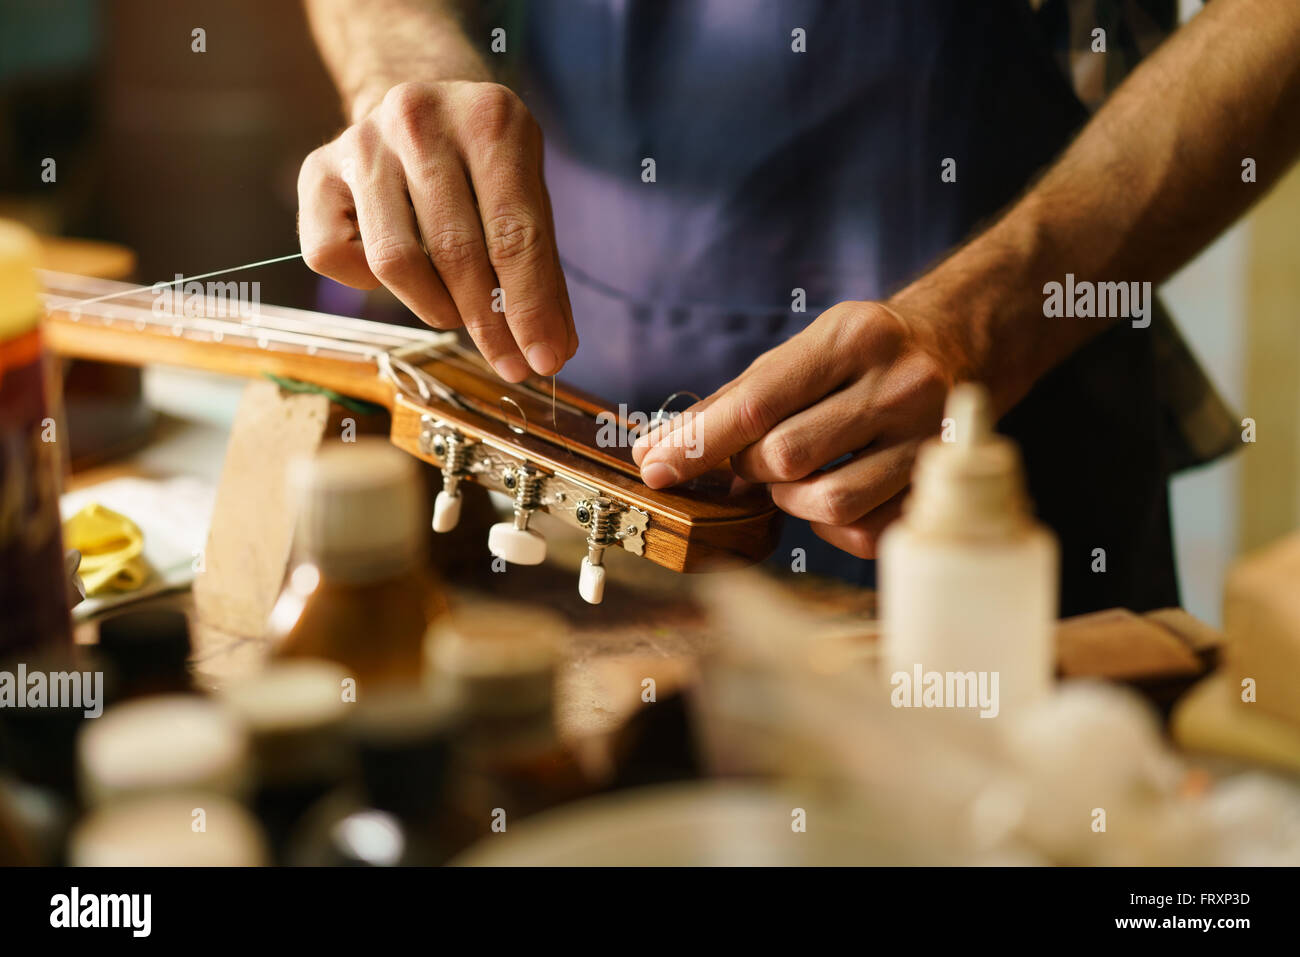 Lute maker shop and classic music instruments: young adult artisan fixing old classic guitar adding a cord and tuning - Stock Image